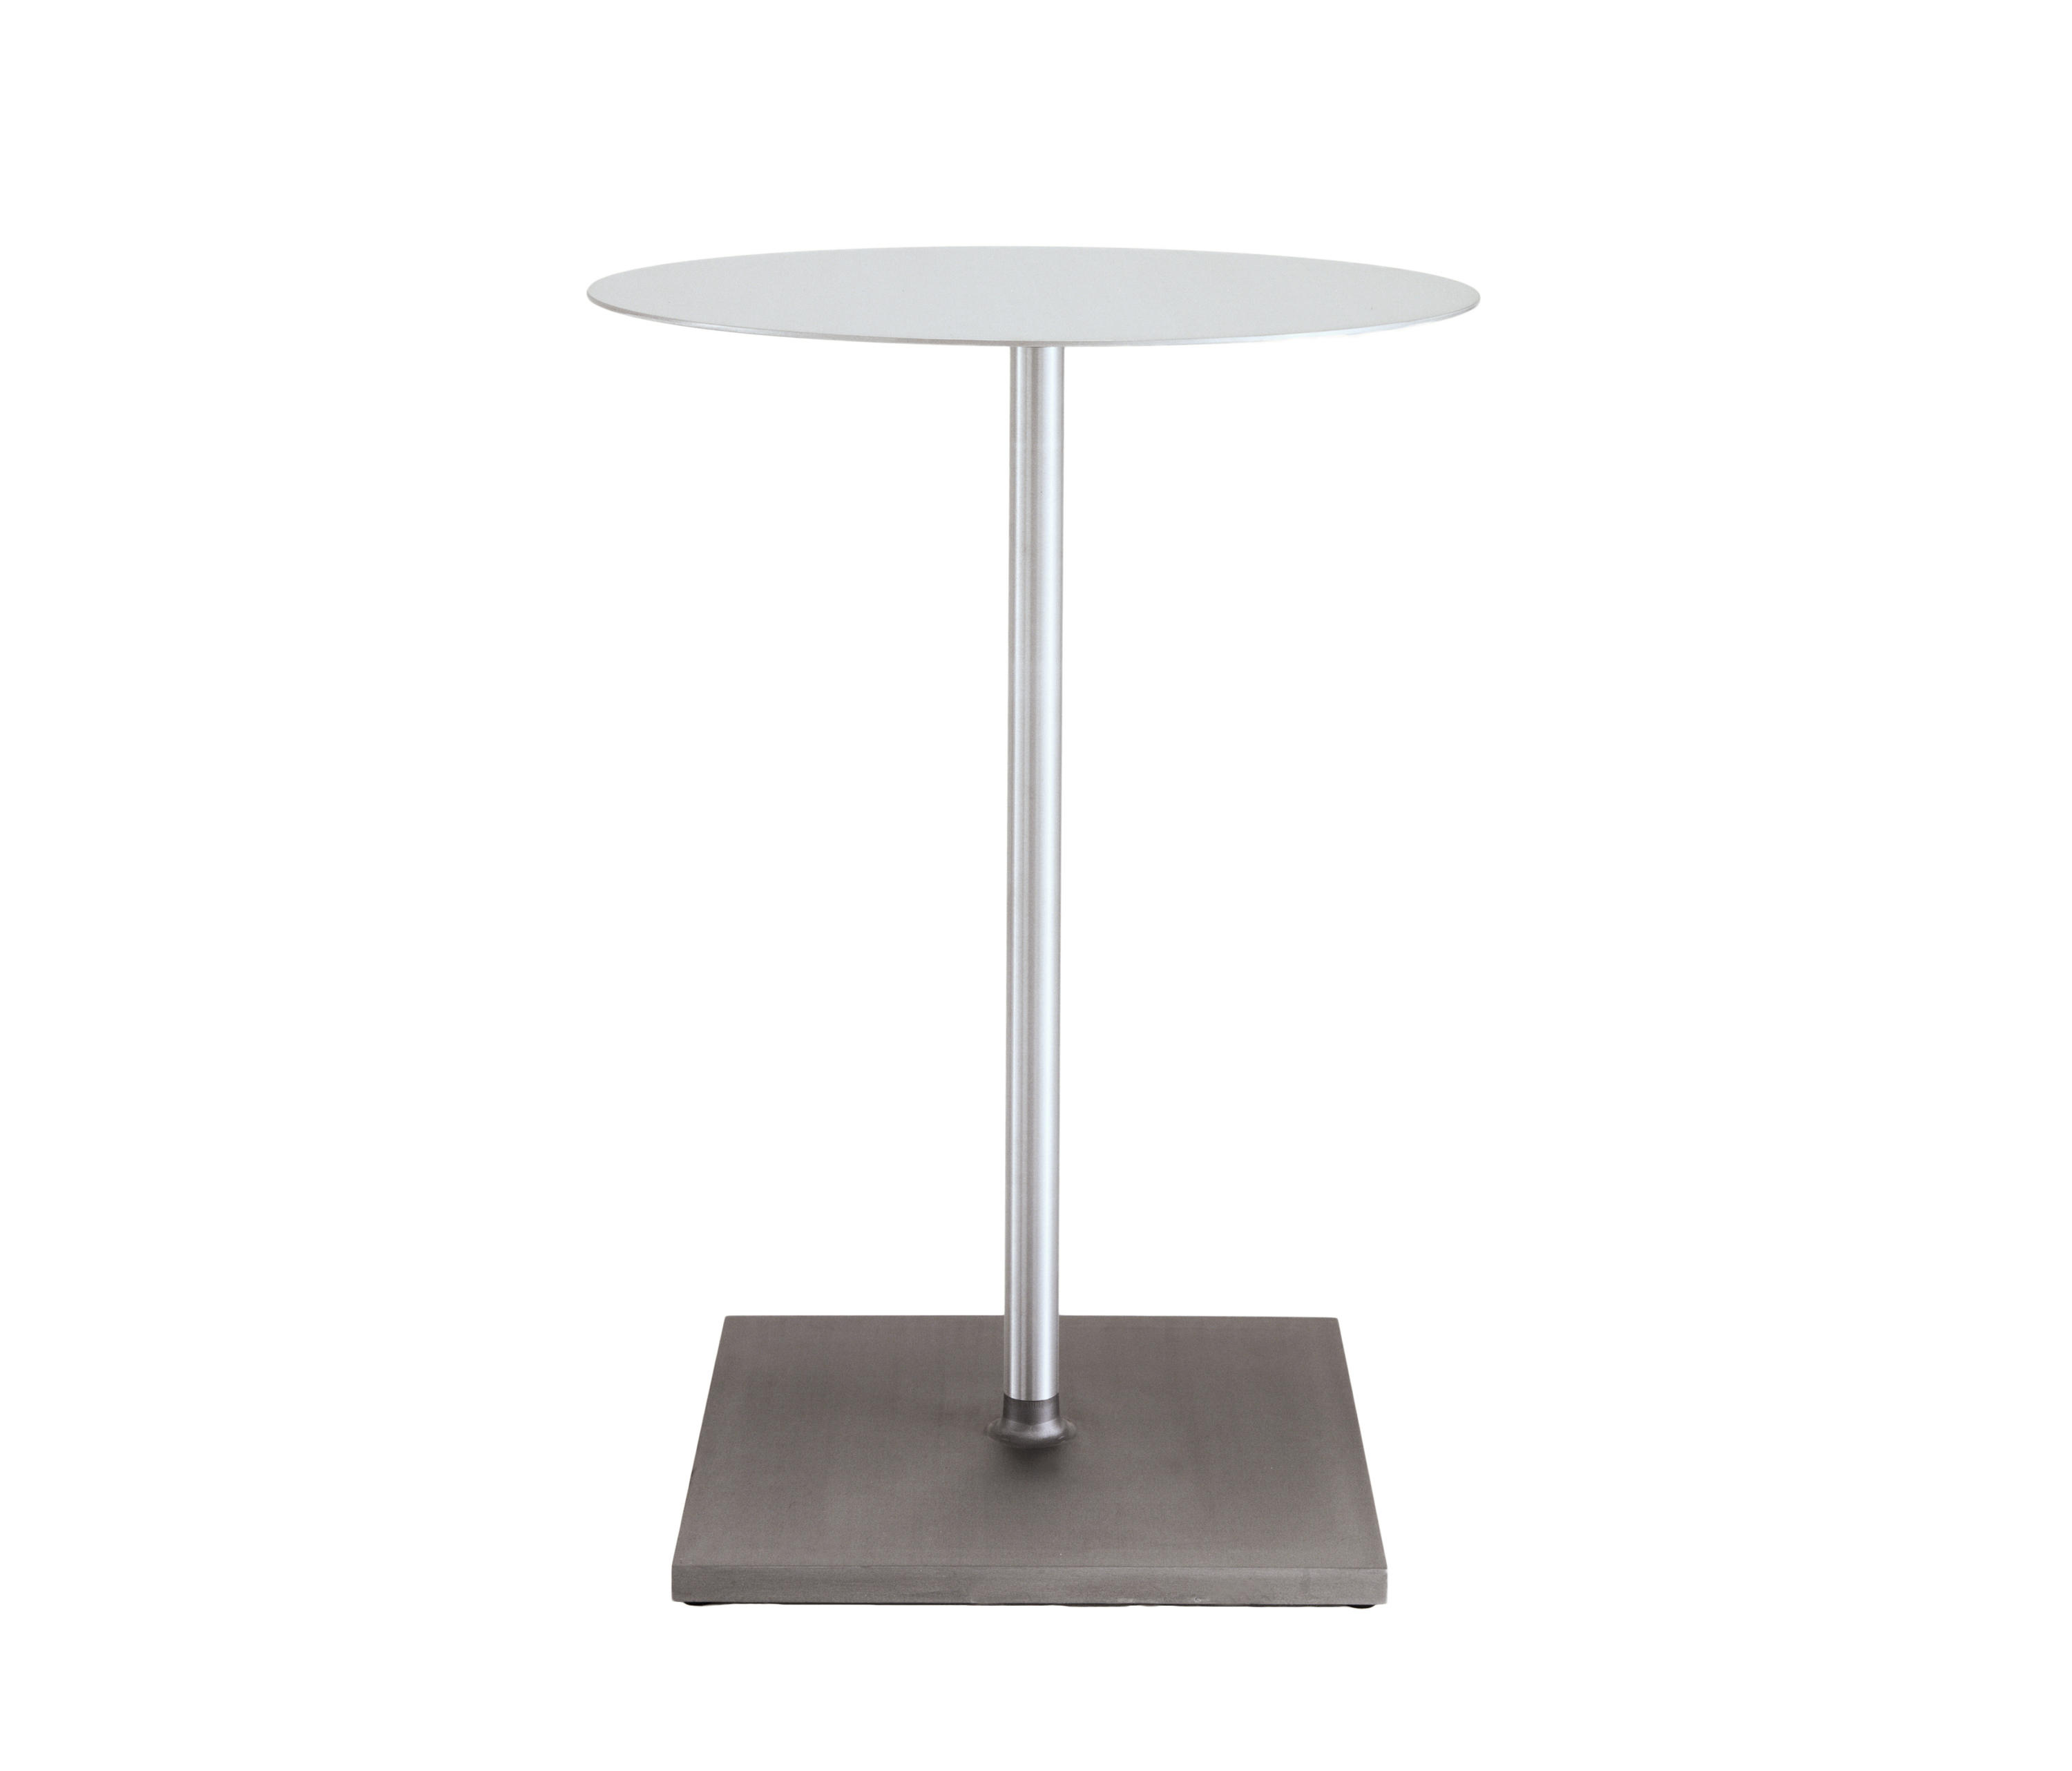 ROUND BRUSHED CAFÉ TABLE Standing Tables From Emeco Architonic - Standing cafe table